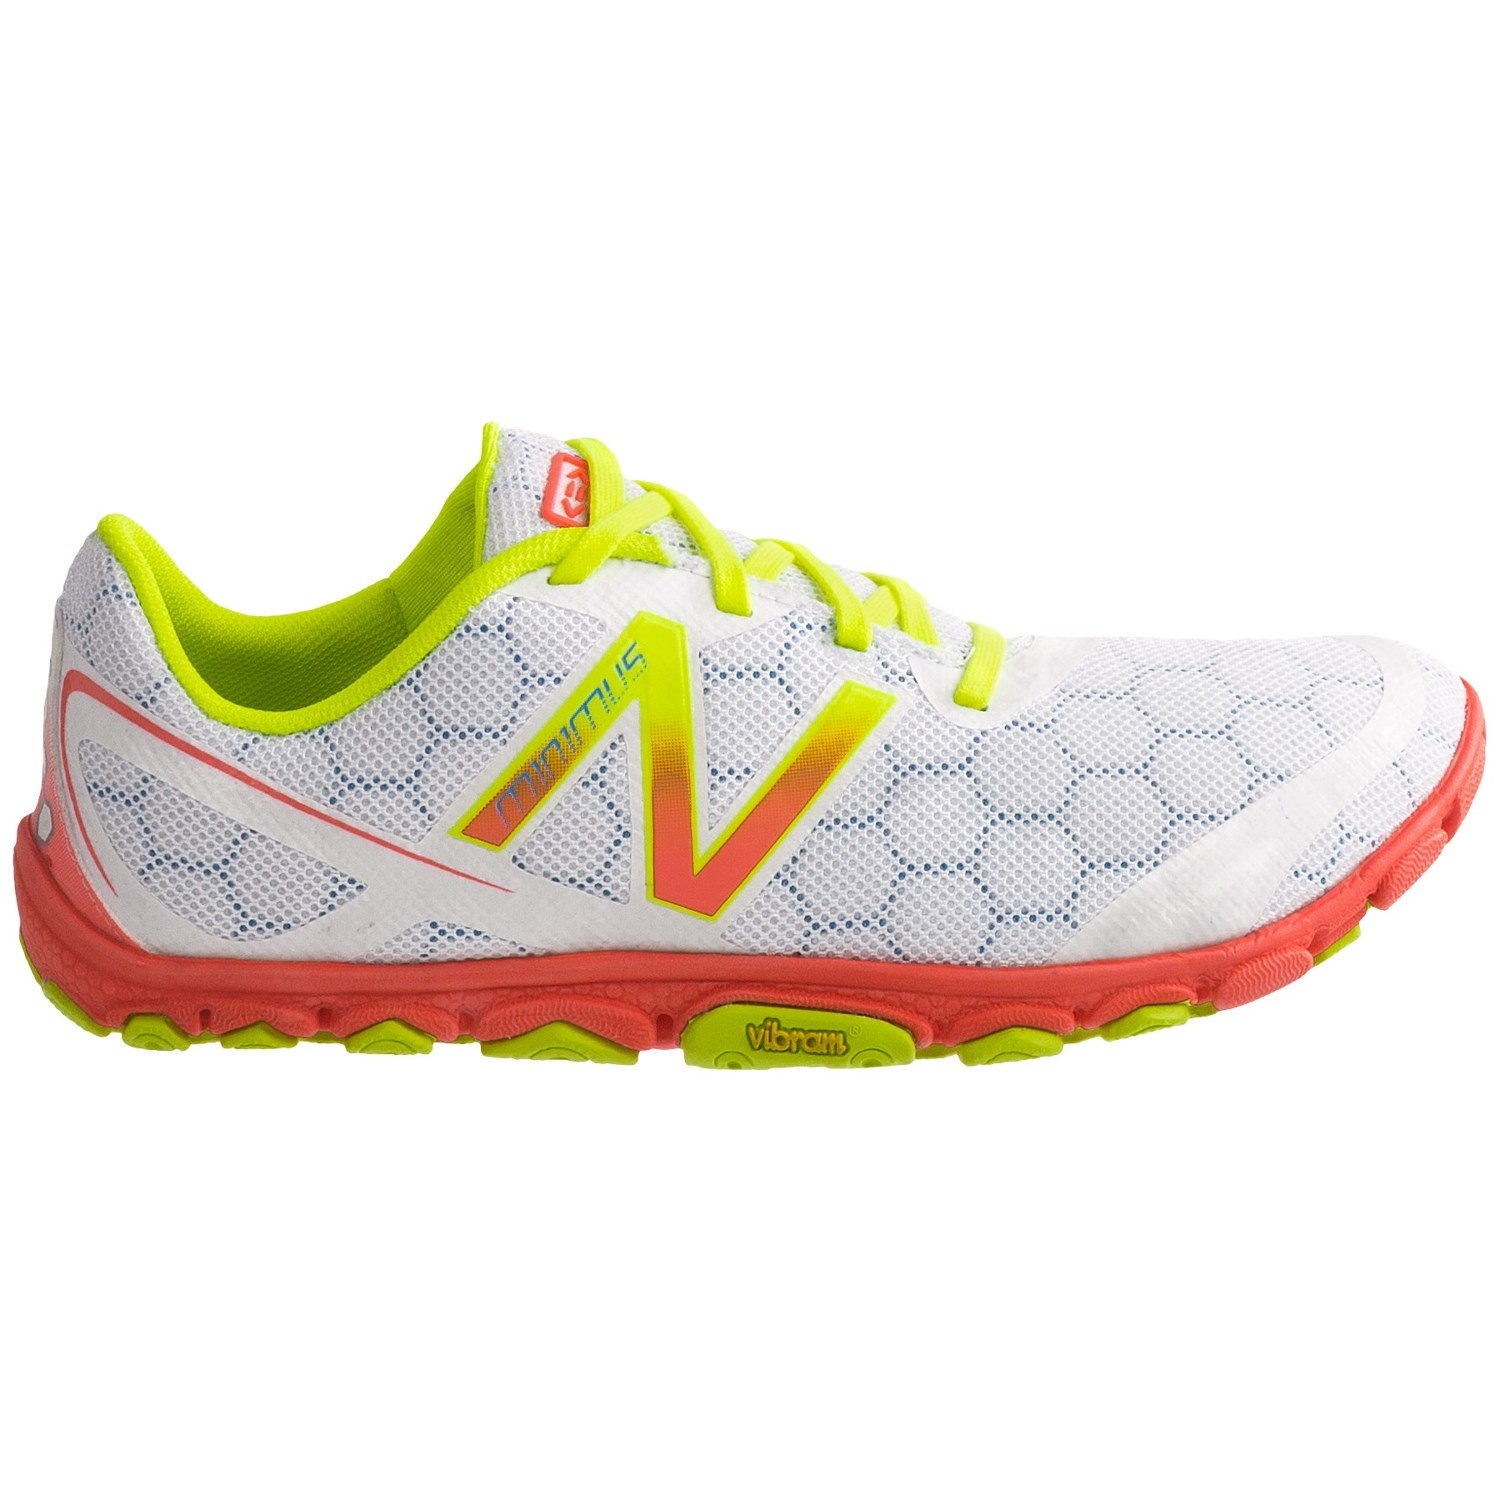 New Balance 10v2 Minimus Running Shoes For Women 6596g